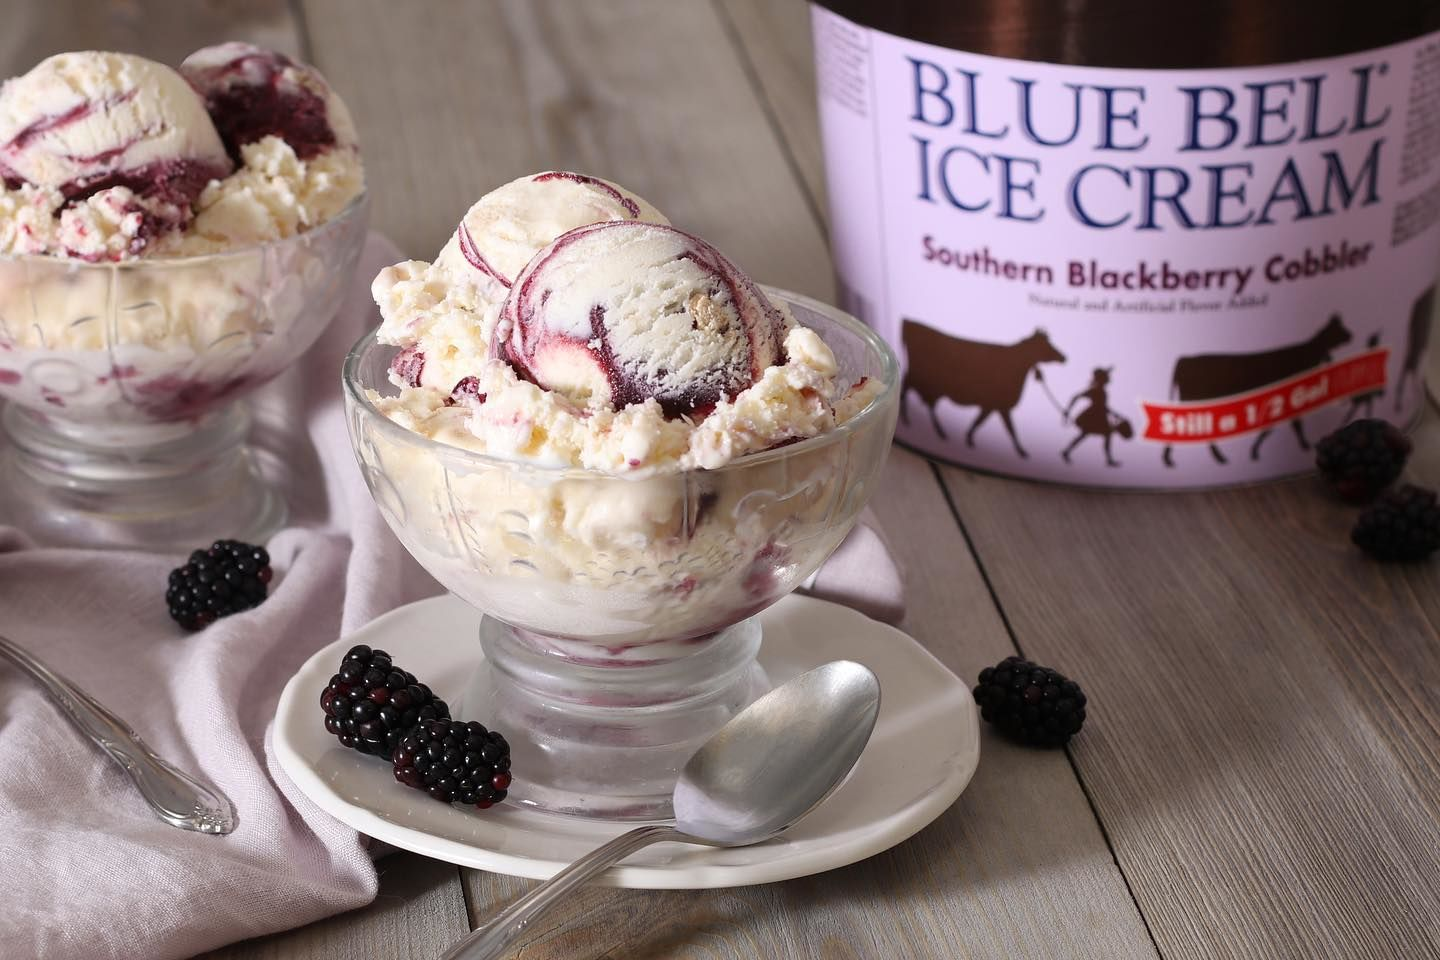 Blue Bell's Southern Blackberry Cobbler is Back for the Summer!